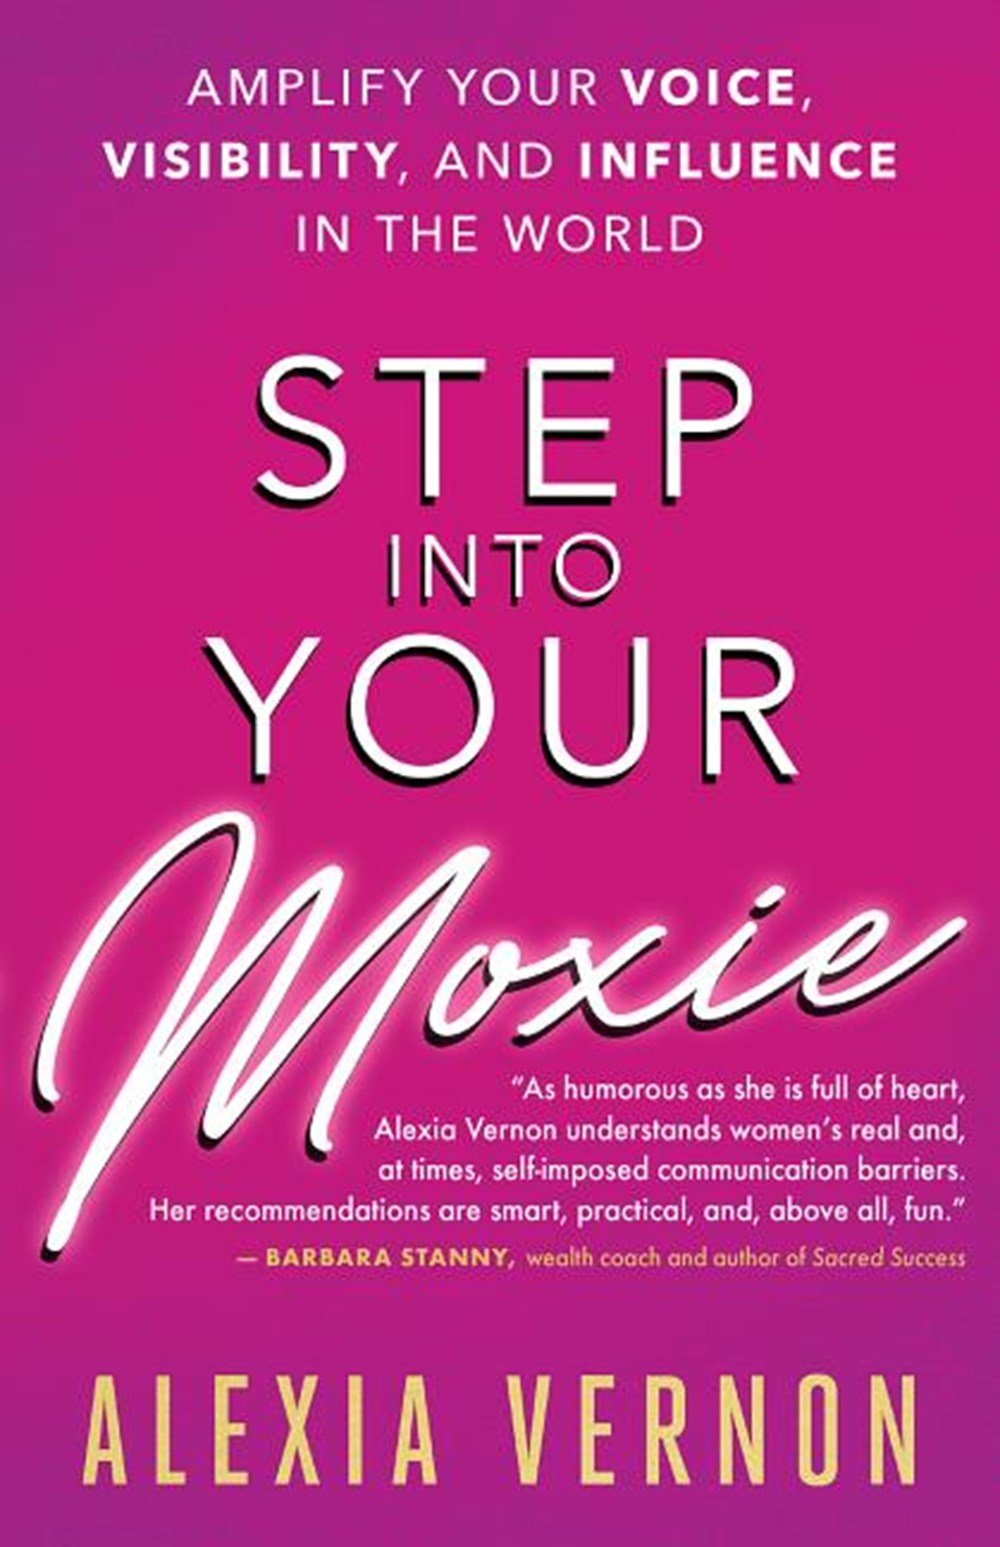 Step Into Your Moxie Amplify Your Voice, Visibility, and Influence in the World